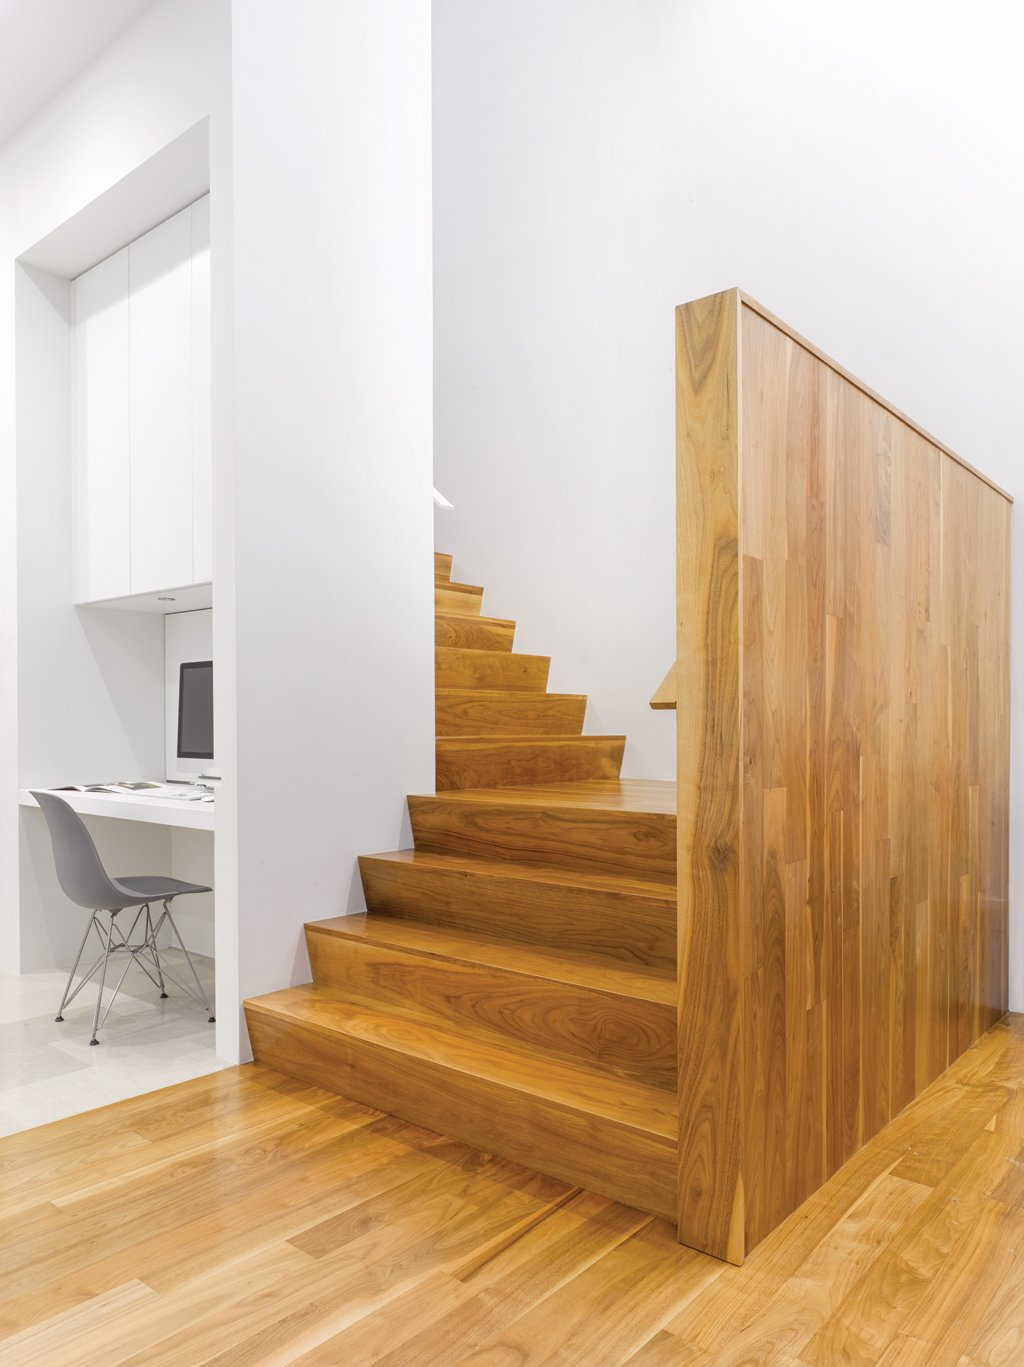 """""""We composed the house to have its highest, brightest space in the middle,"""" says Paul Raff. Warm wood stairs lead to the second floor, which houses guest bedrooms, bath, and a kitchenette for the family's frequent visitors. Tagged: Staircase and Wood Tread.  190+ Best Modern Staircase Ideas by Dwell from A Modern Toronto House Covered by a Contemporary Solar Screen"""